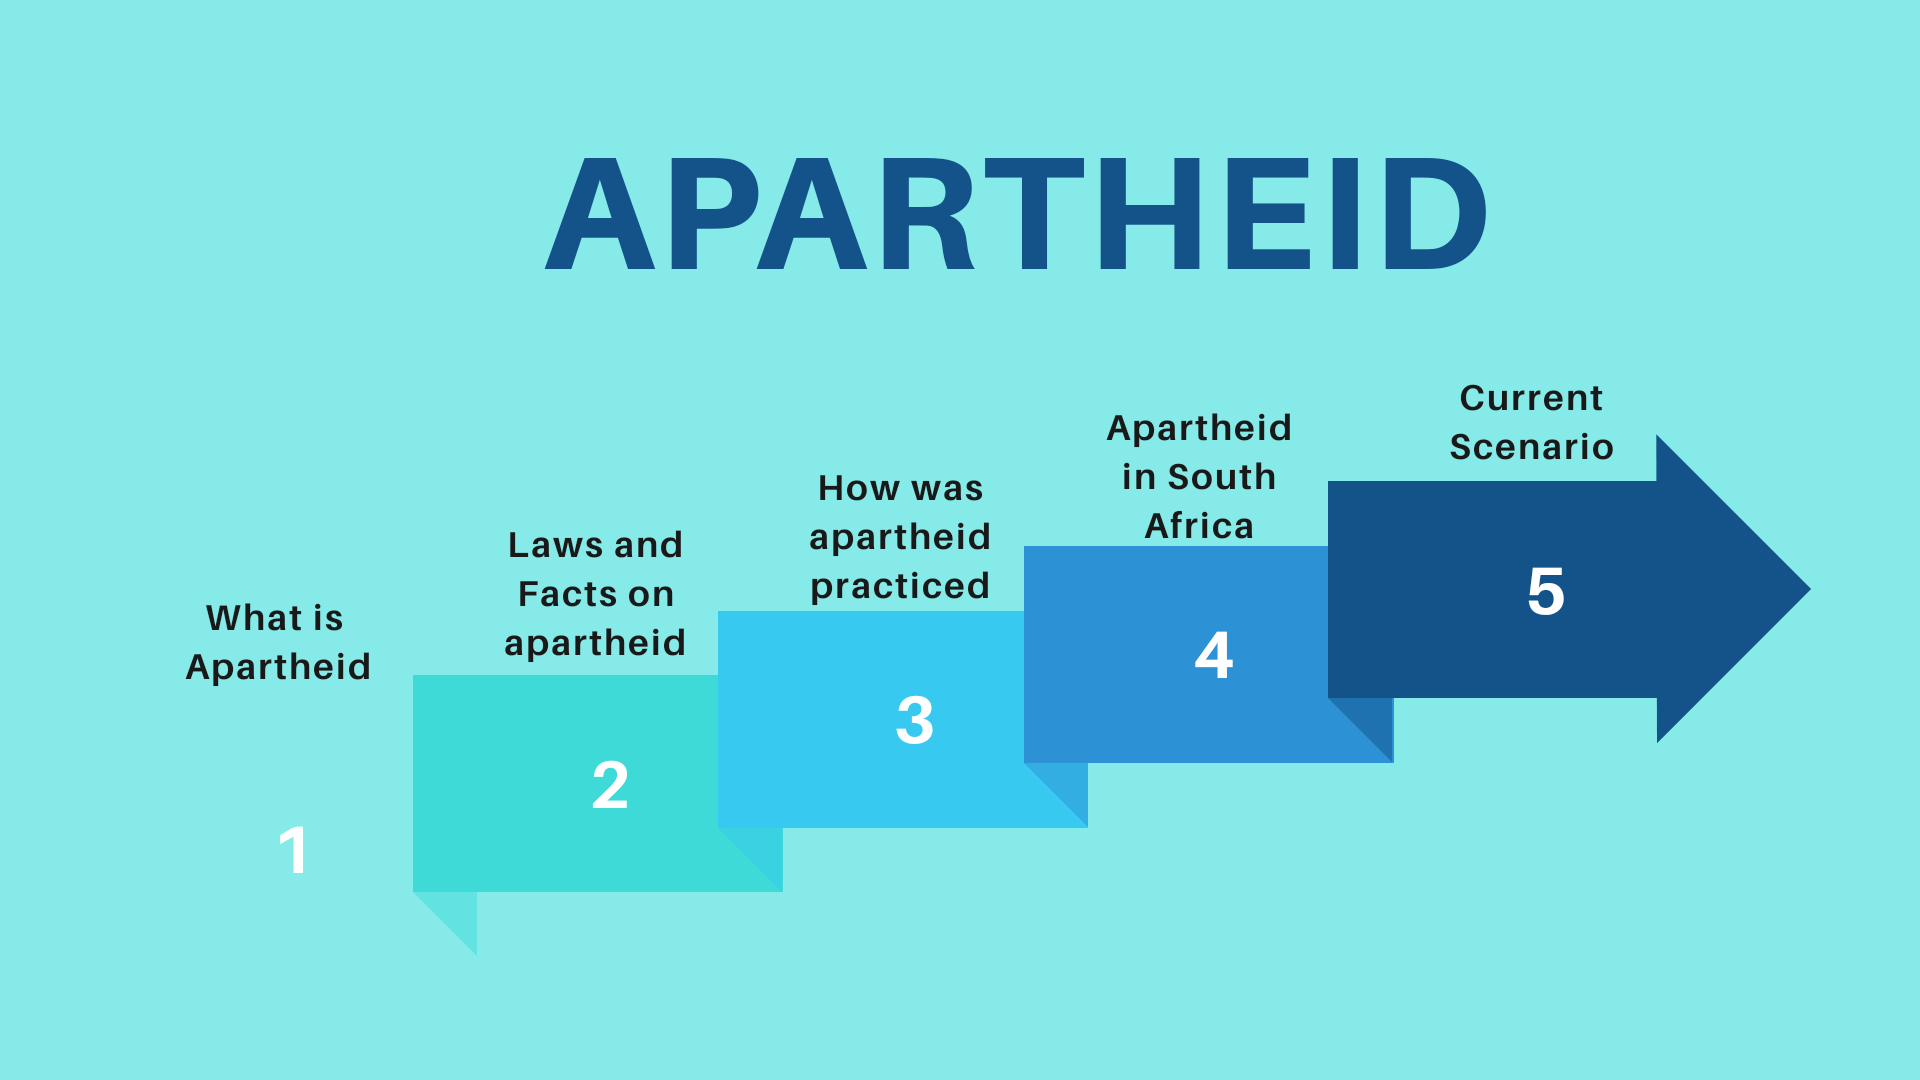 What is apartheid